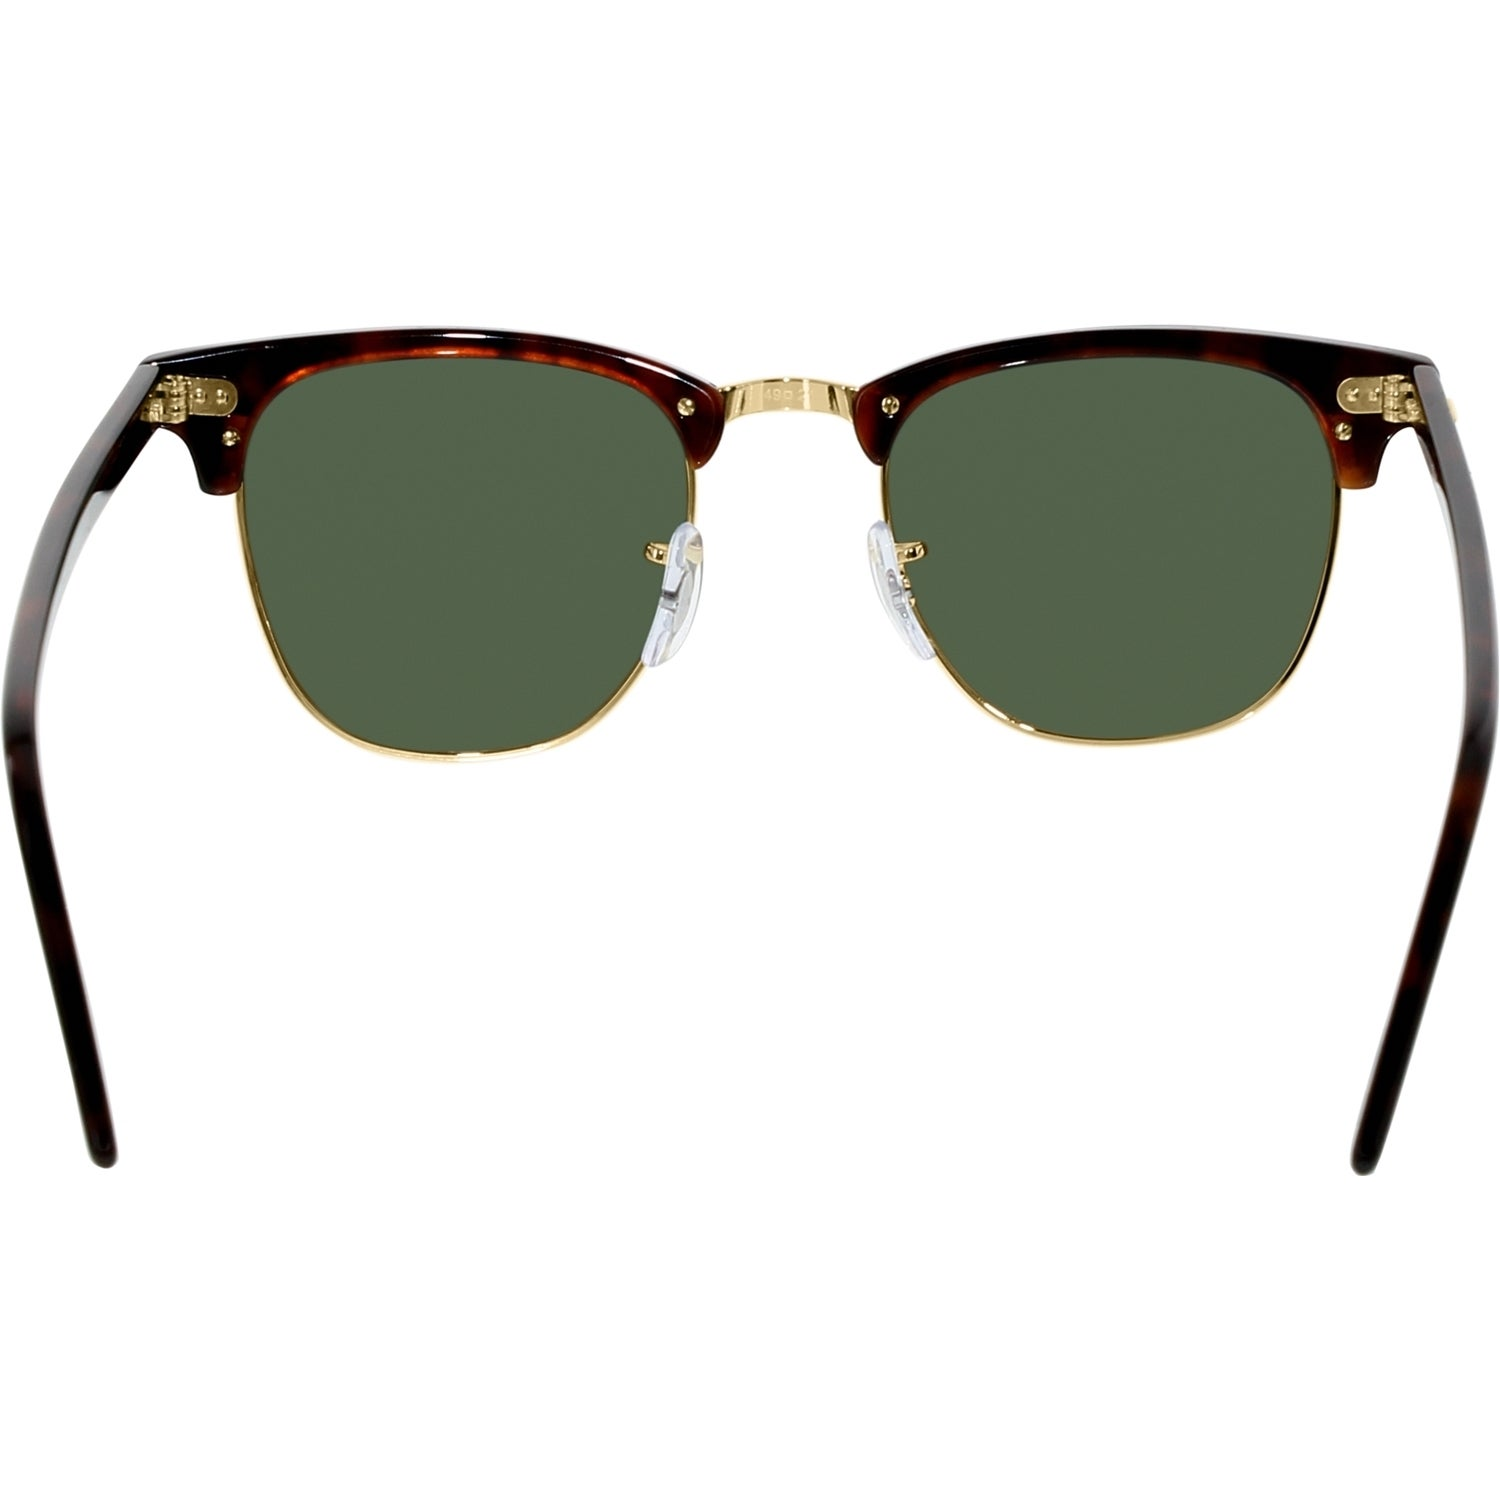 9bac6fe650 Shop Ray-Ban Clubmaster Classic RB3016 Tortoise Frame Polarized Green 49mm  Lens Sunglasses - Free Shipping Today - Overstock - 14276941